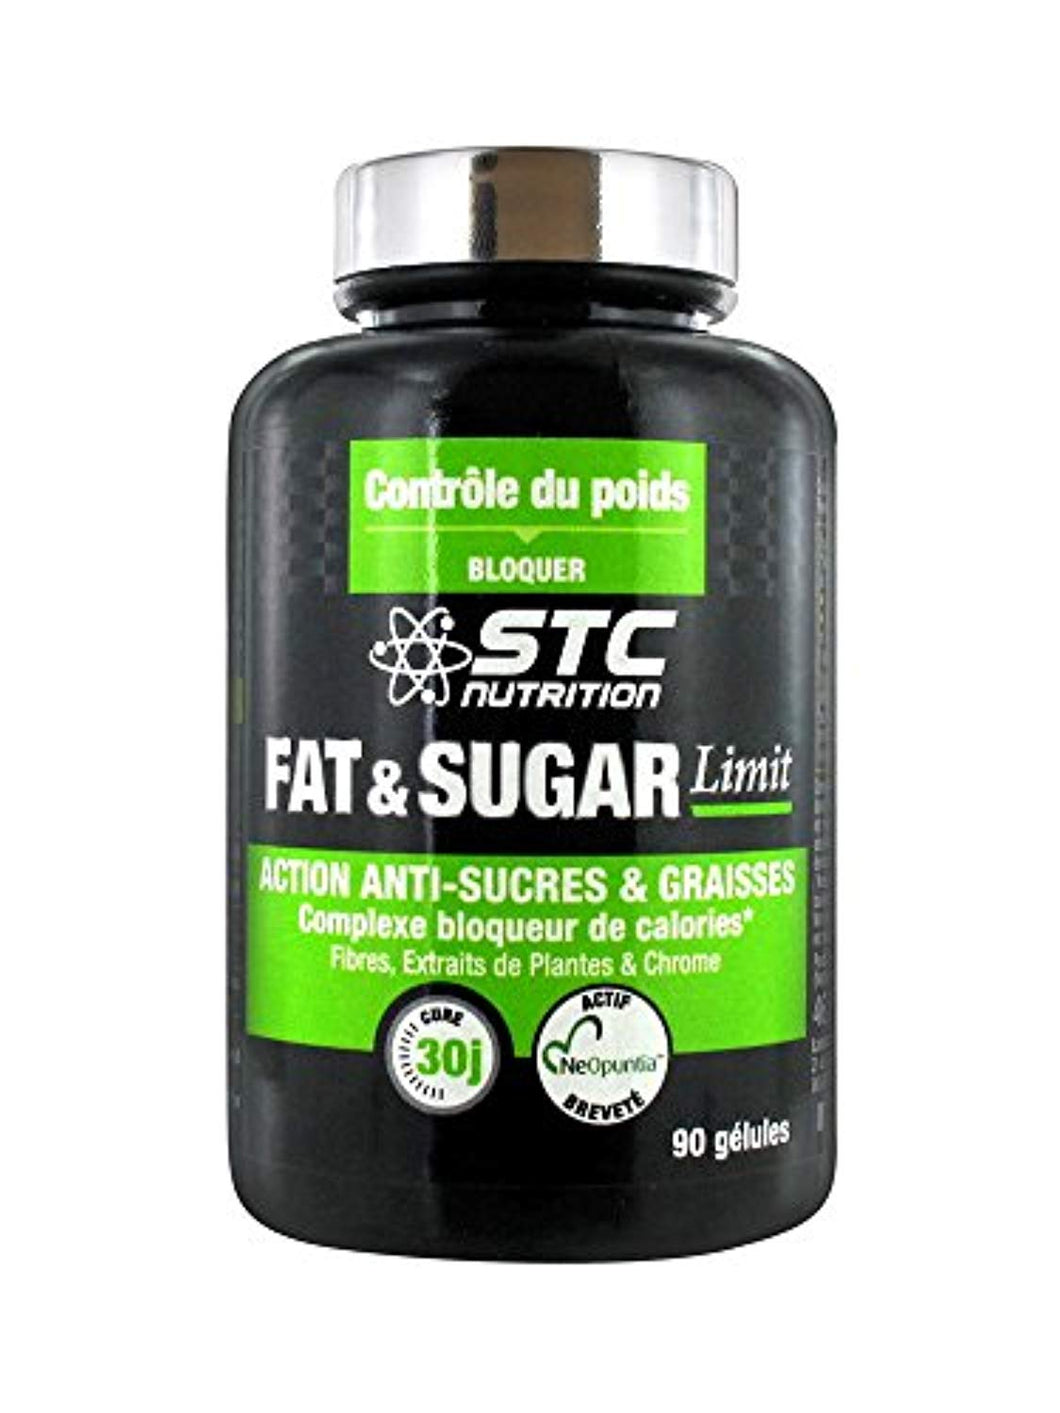 STC Nutrition Fat & Sugar Limit 90 Gélules